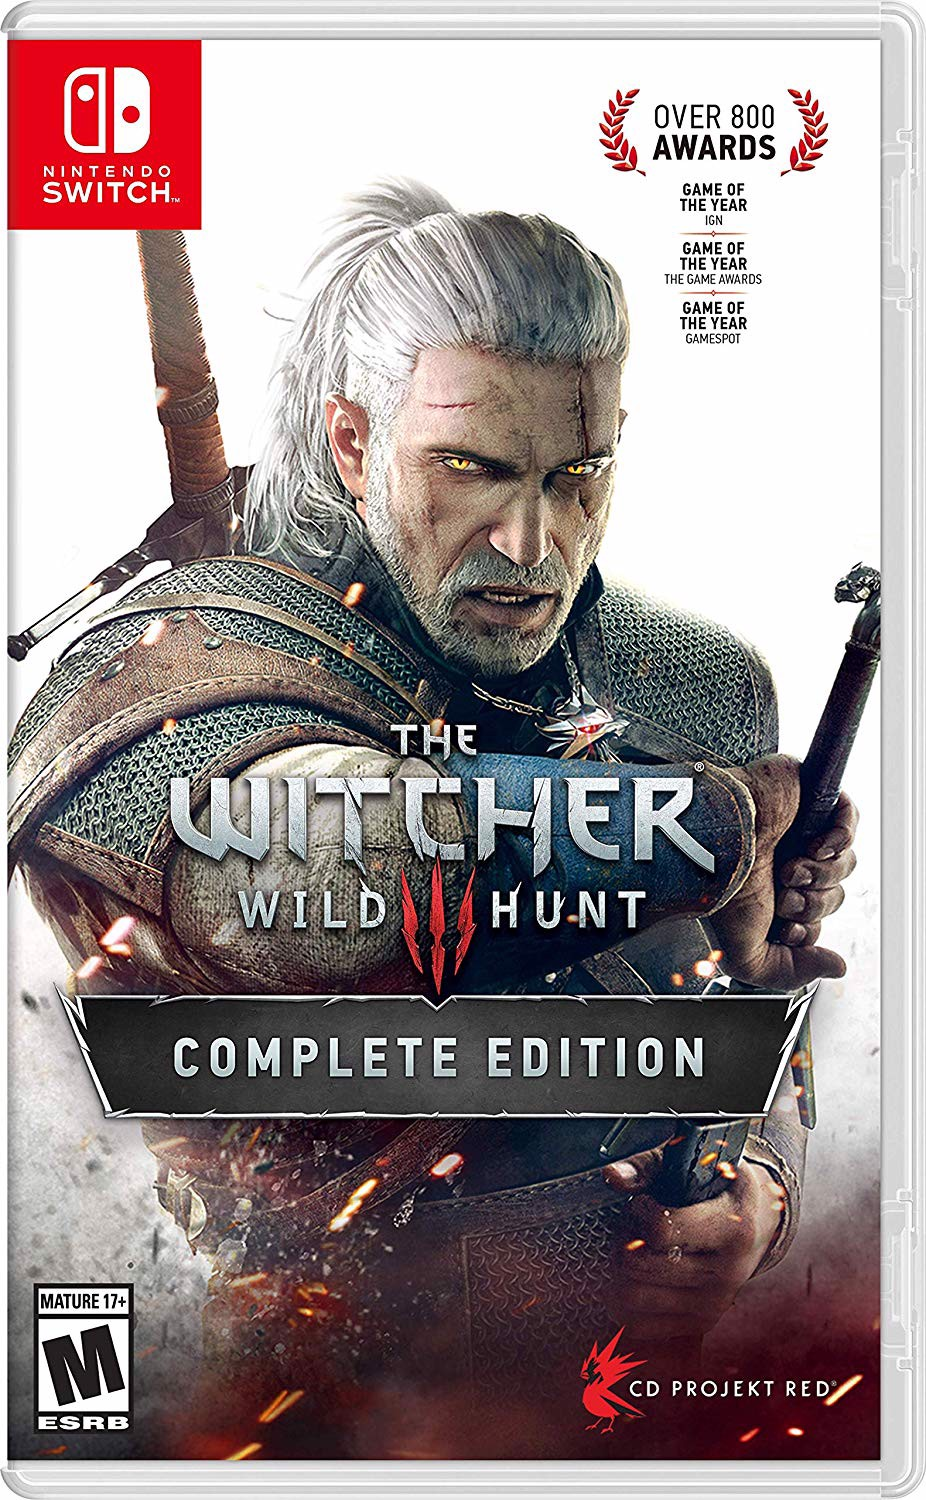 214 - Witcher 3: Wild Hunt Complete Edition